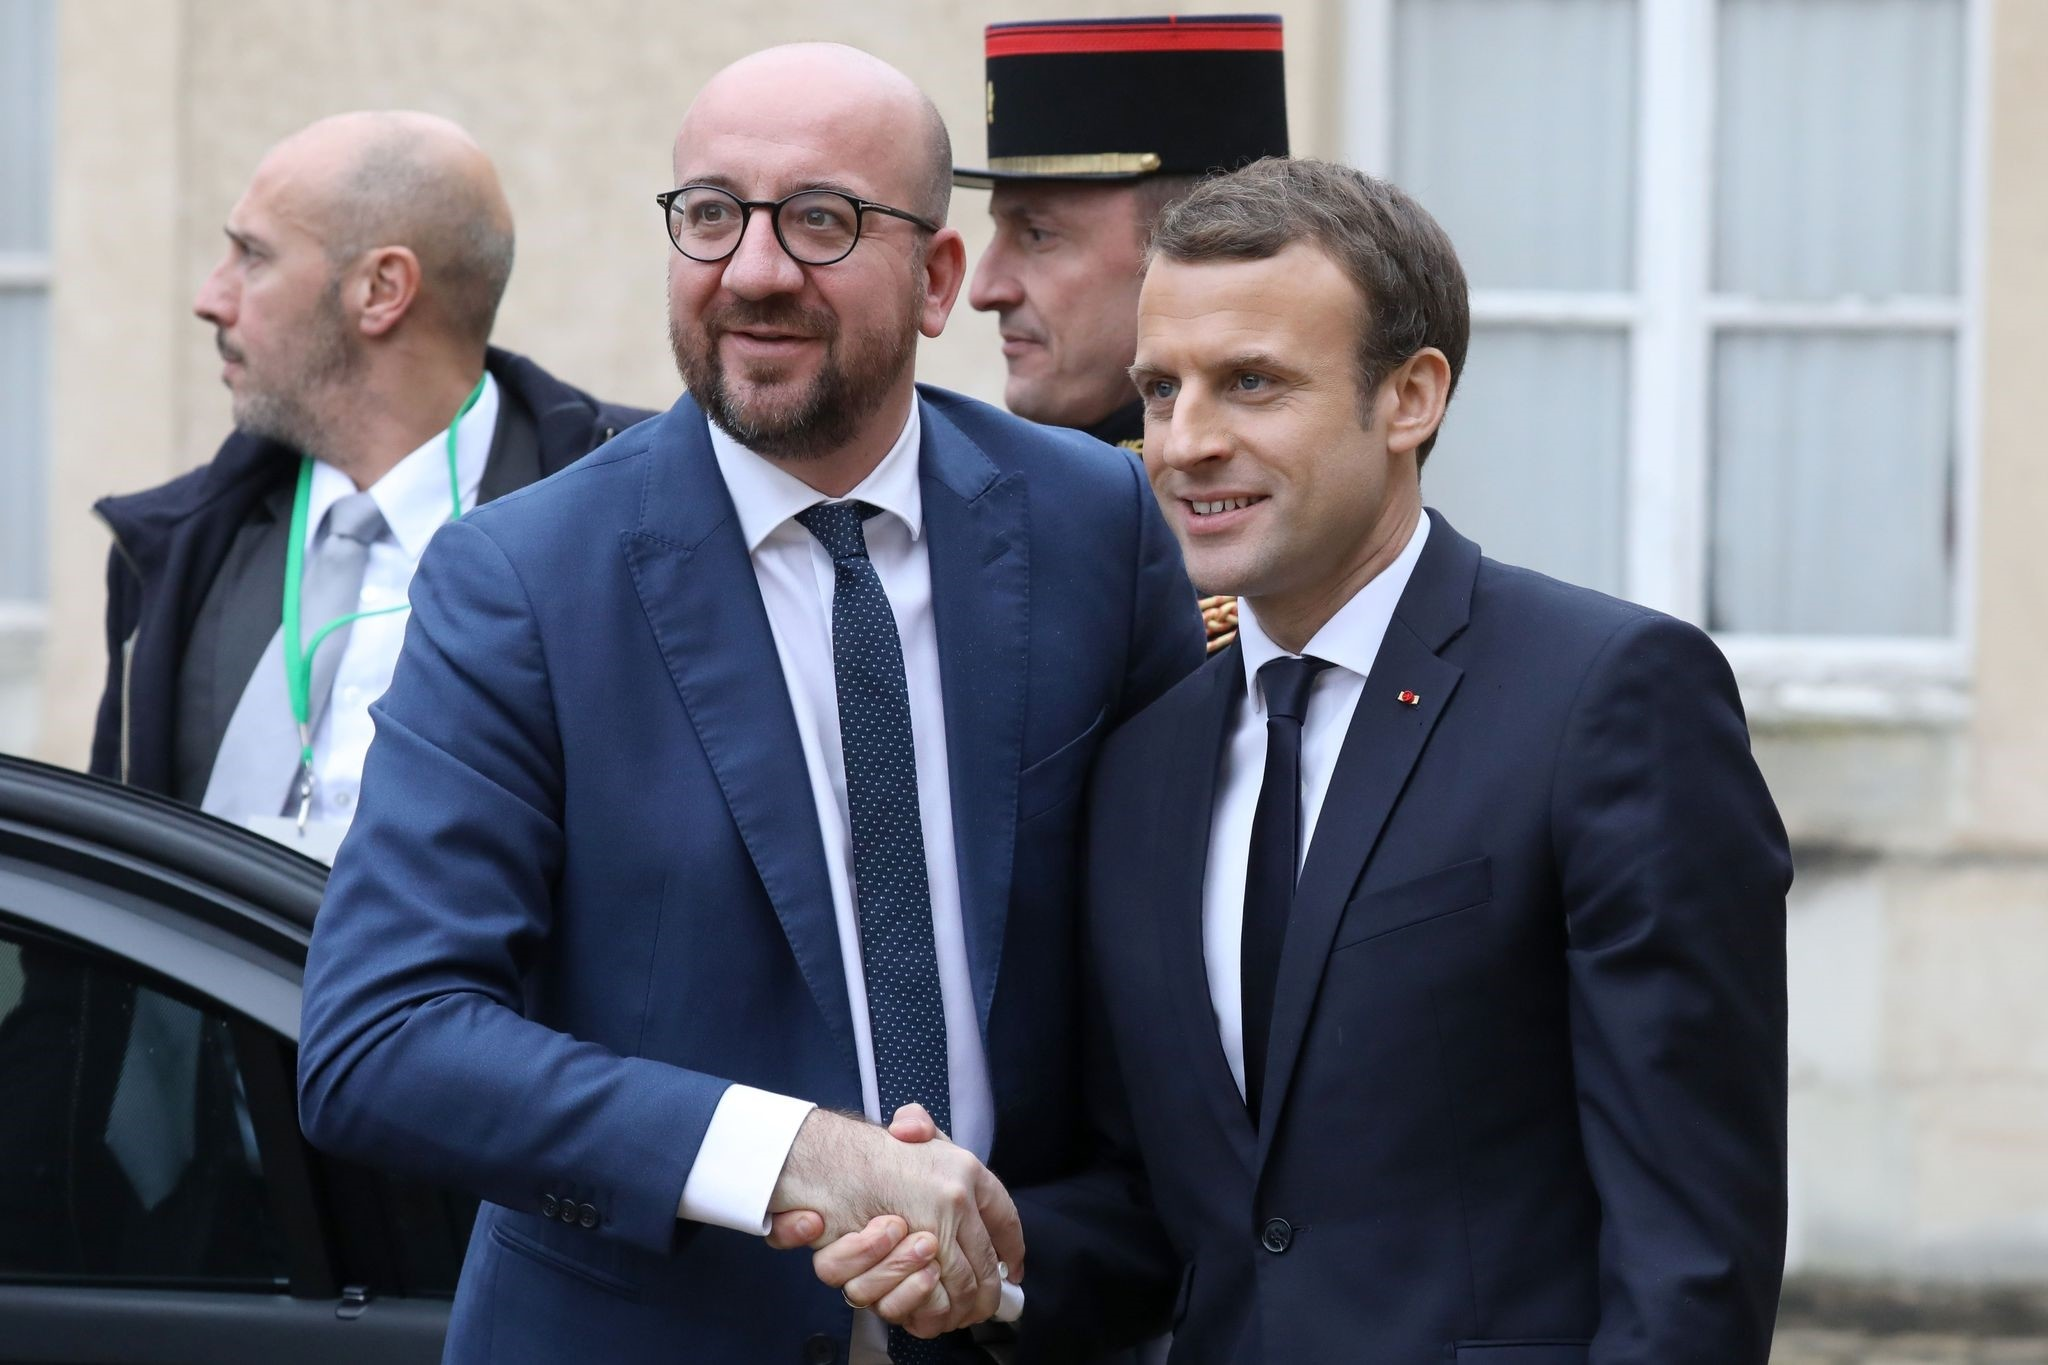 Belgian prime minister Louis Michel (L) is welcomed by French President Emmanuel Macron upon at his arrival for a summit from the underfunded G5 Sahel anti-terror coalition on December 13, 2017. (AFP Photo)